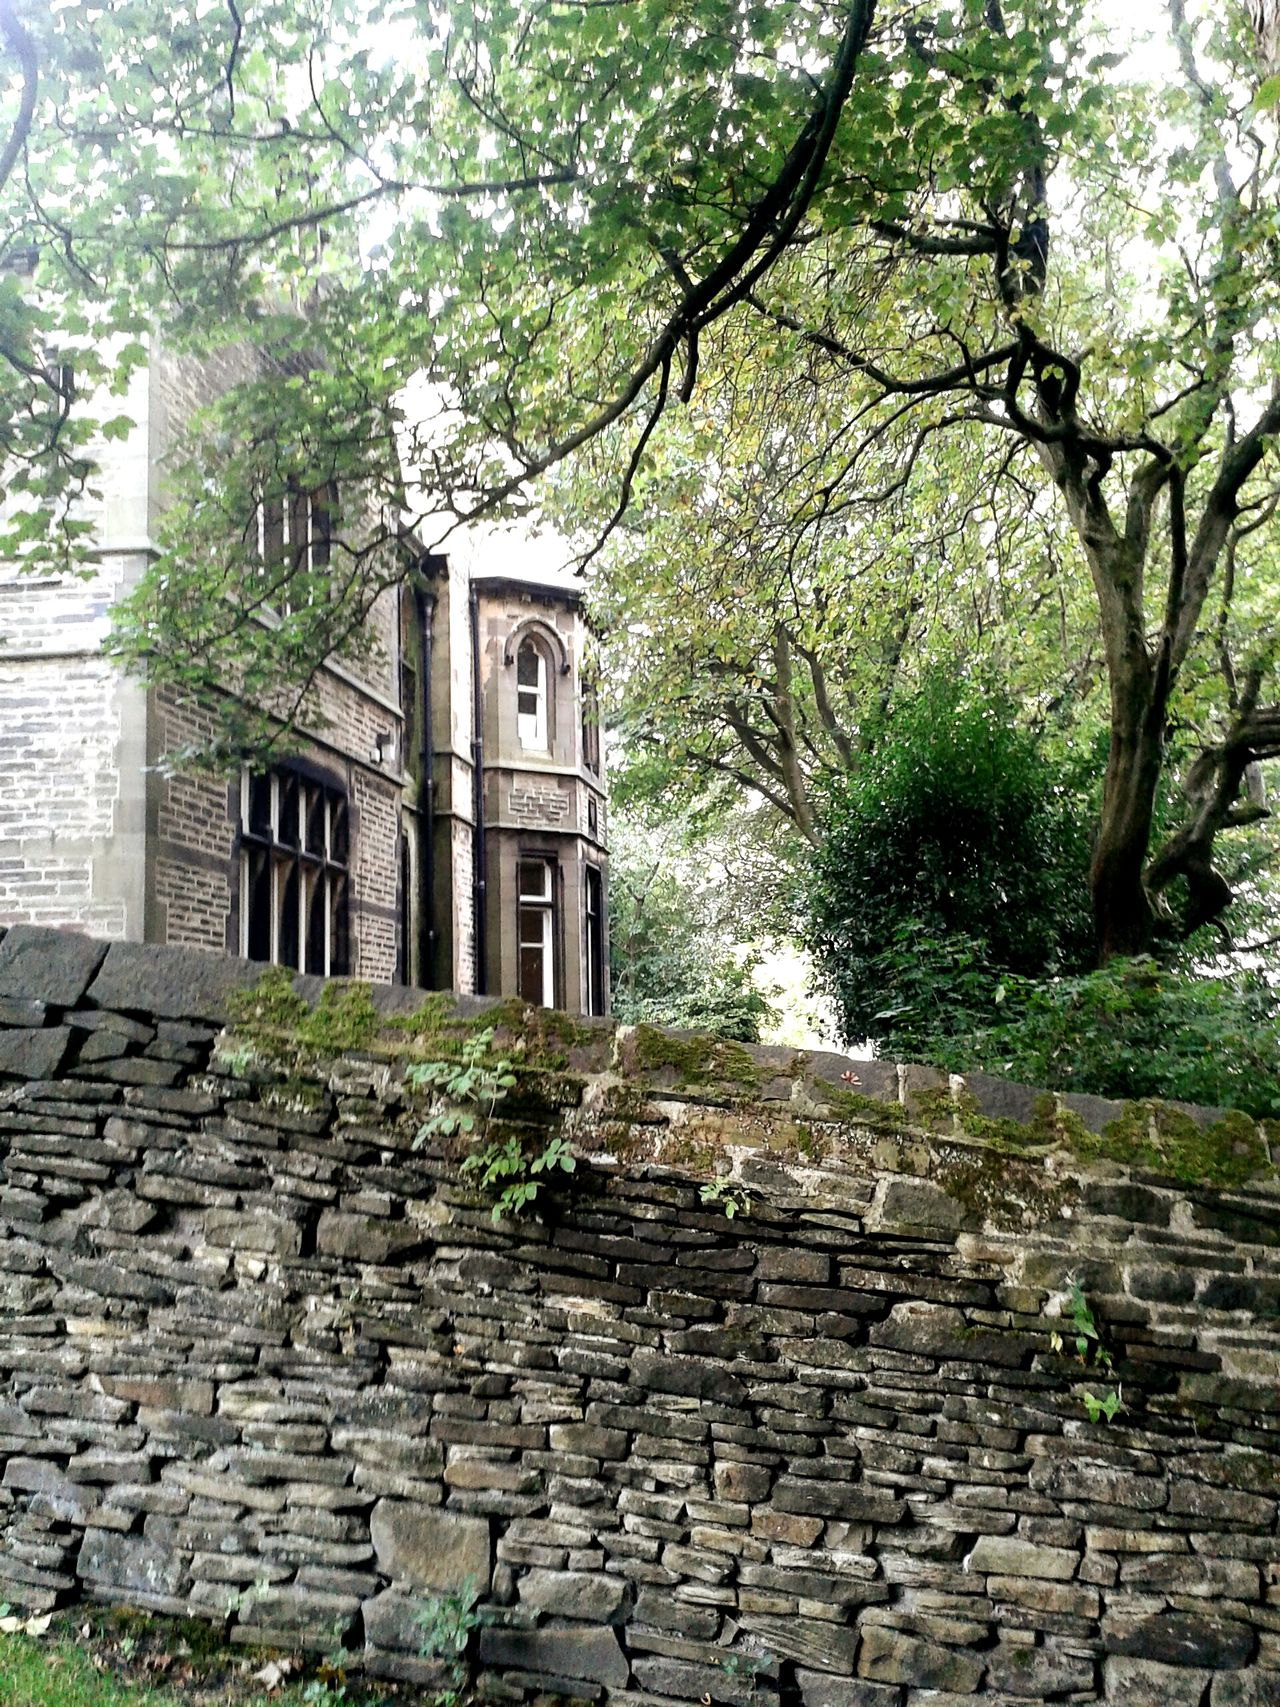 Bank Field Museum Park Fallbeauty Old Houses Theseoldbuildingsmakemehappy Stone Wall Gothic Peaceful Place Autumnbeauty Beautiful Stonework